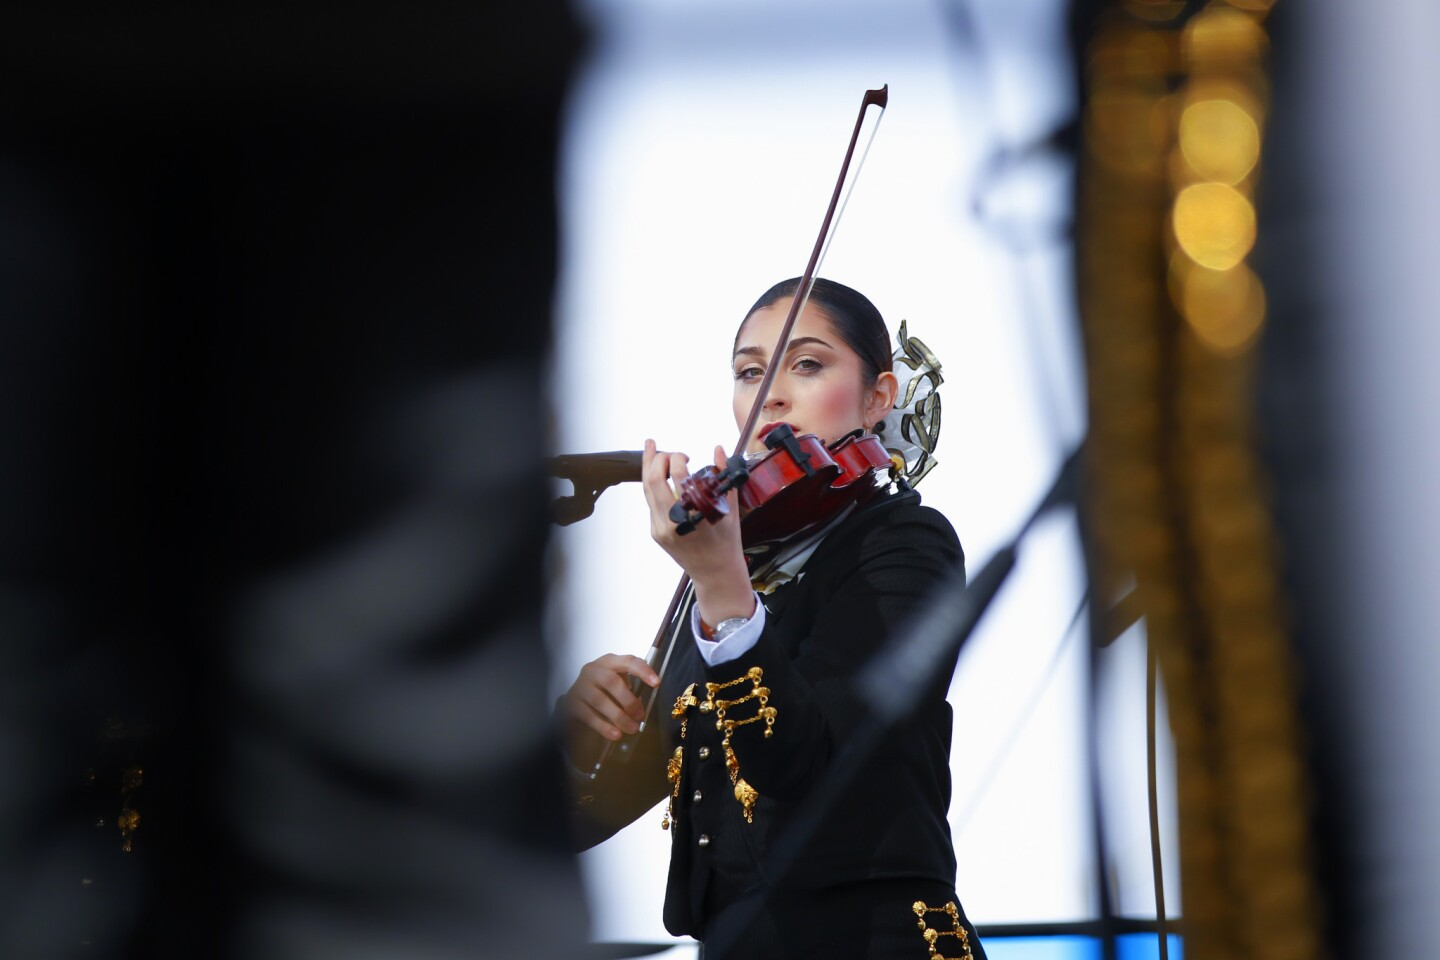 One of the violinist from the Mariachi Estrellas de Chula Vista plays during a solo performance. She and the group were performing on Sunday at the annual International Mariachi Festival in National City.